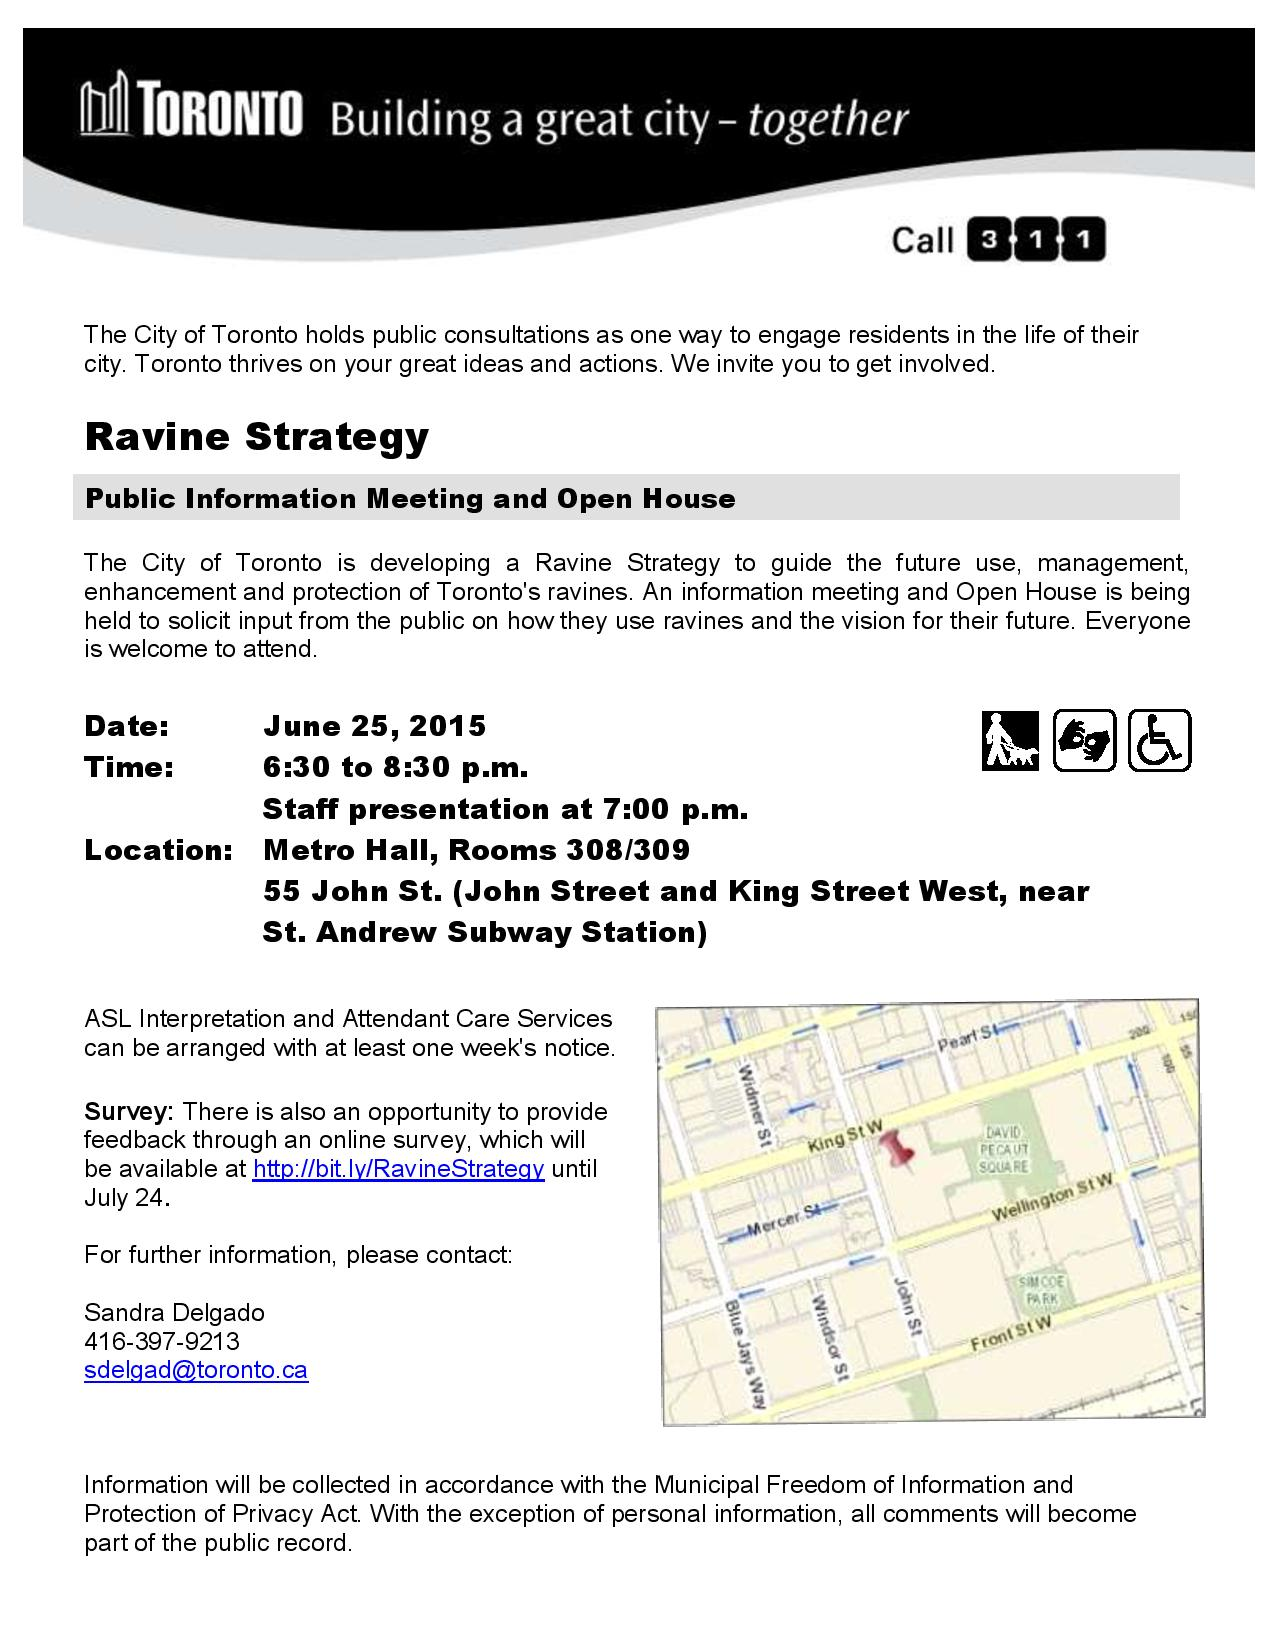 PFR public consult template_June25 ravine open house -page-001